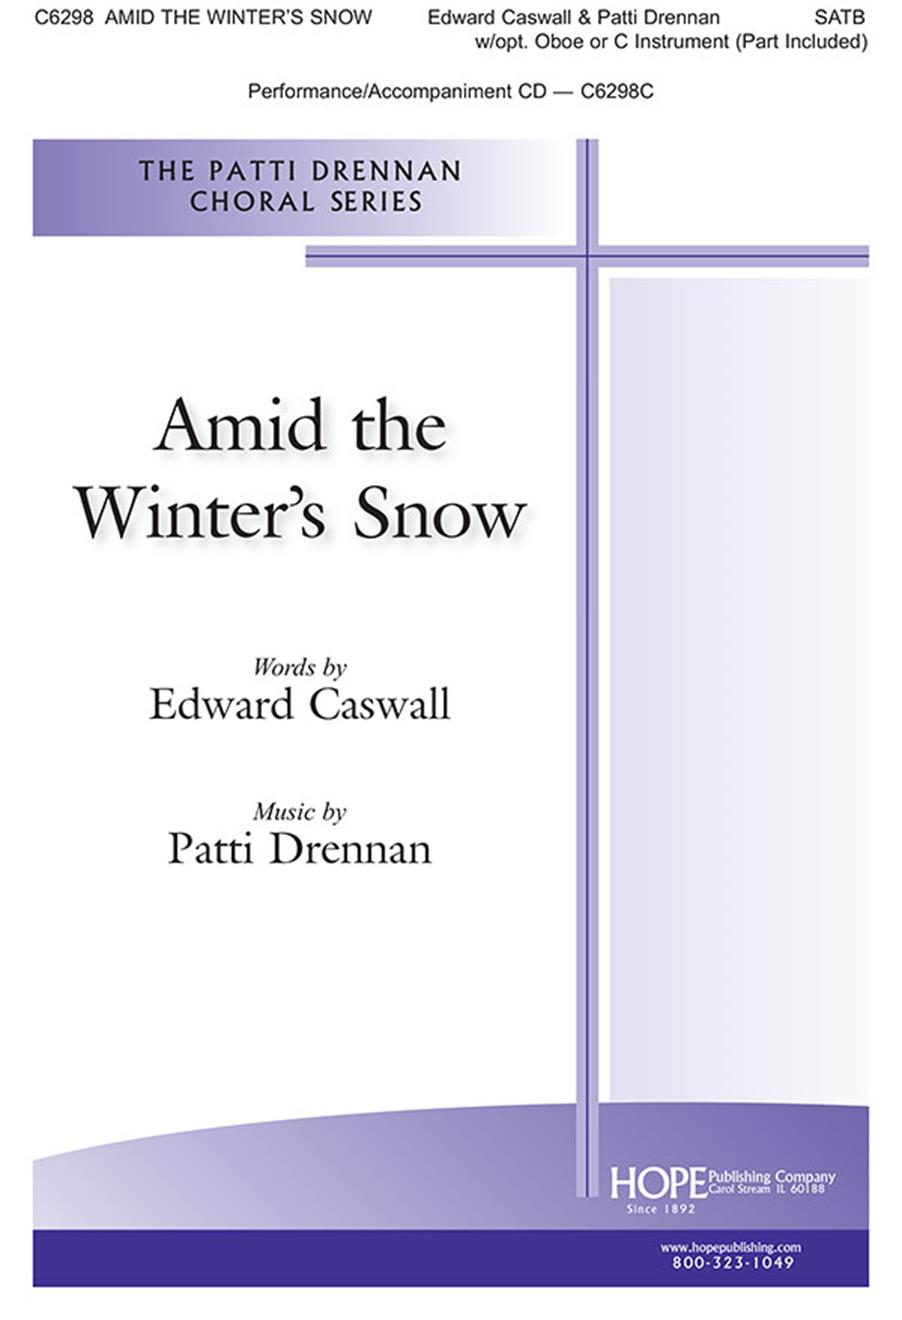 Amid the Winter's Snow - SATB Cover Image